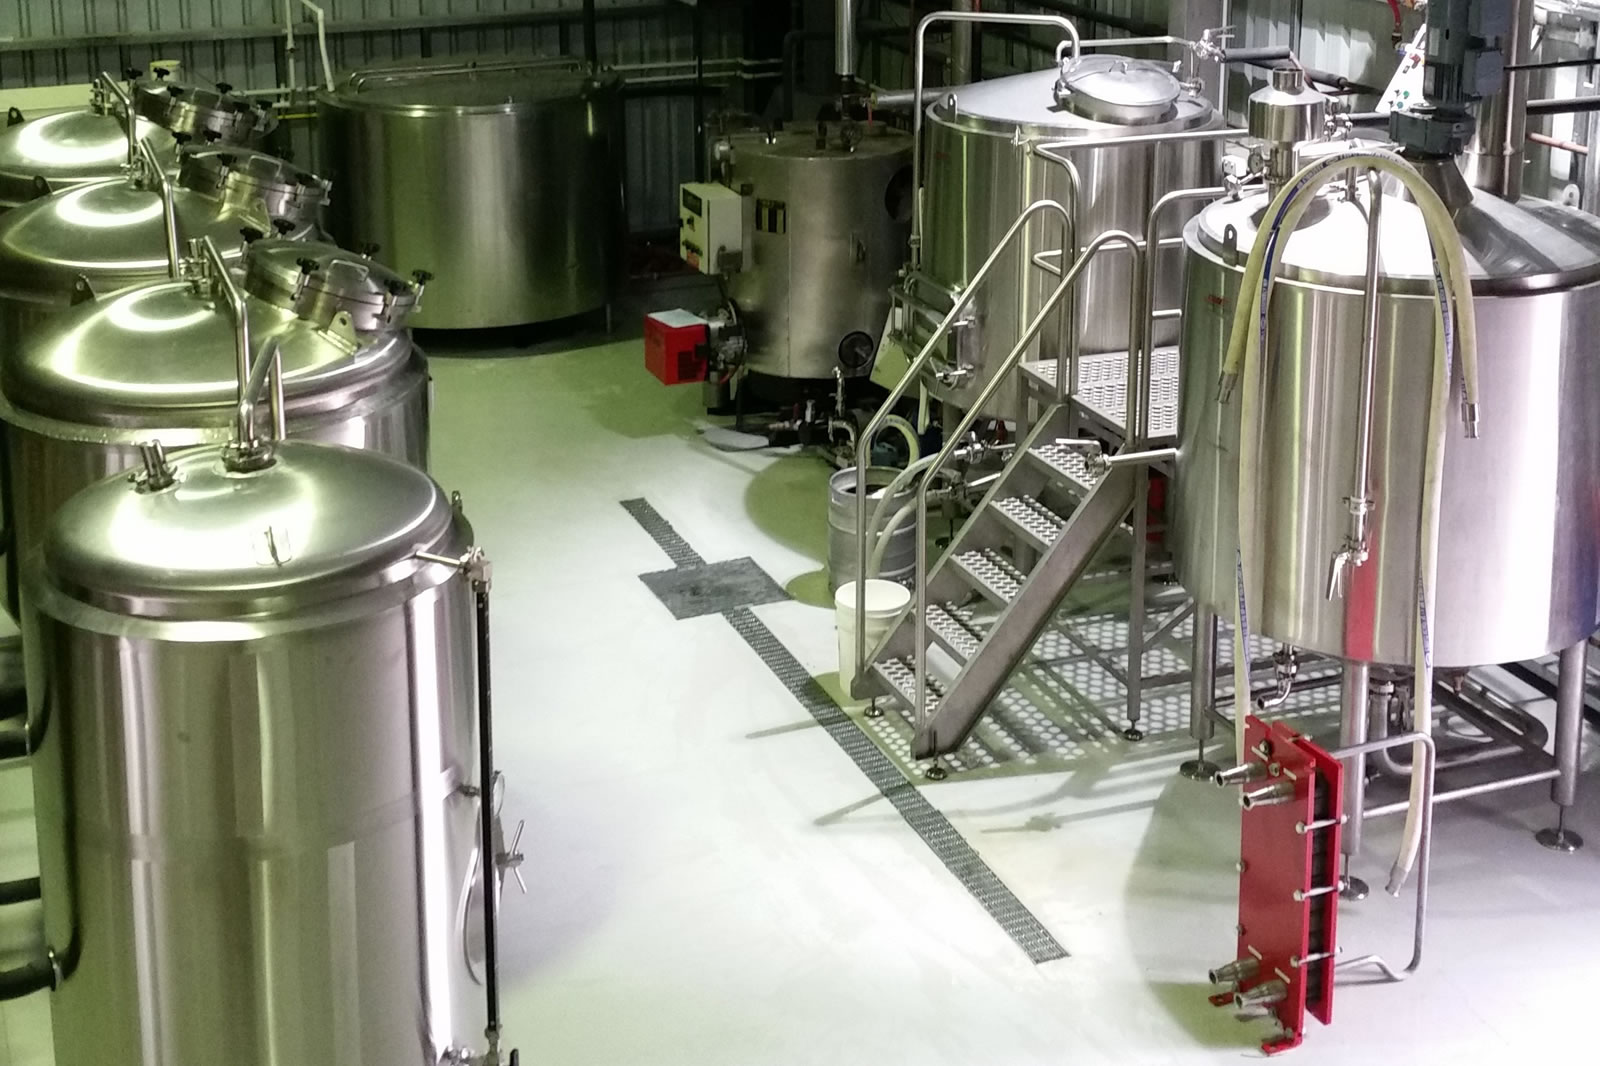 The Bandicoot brewery